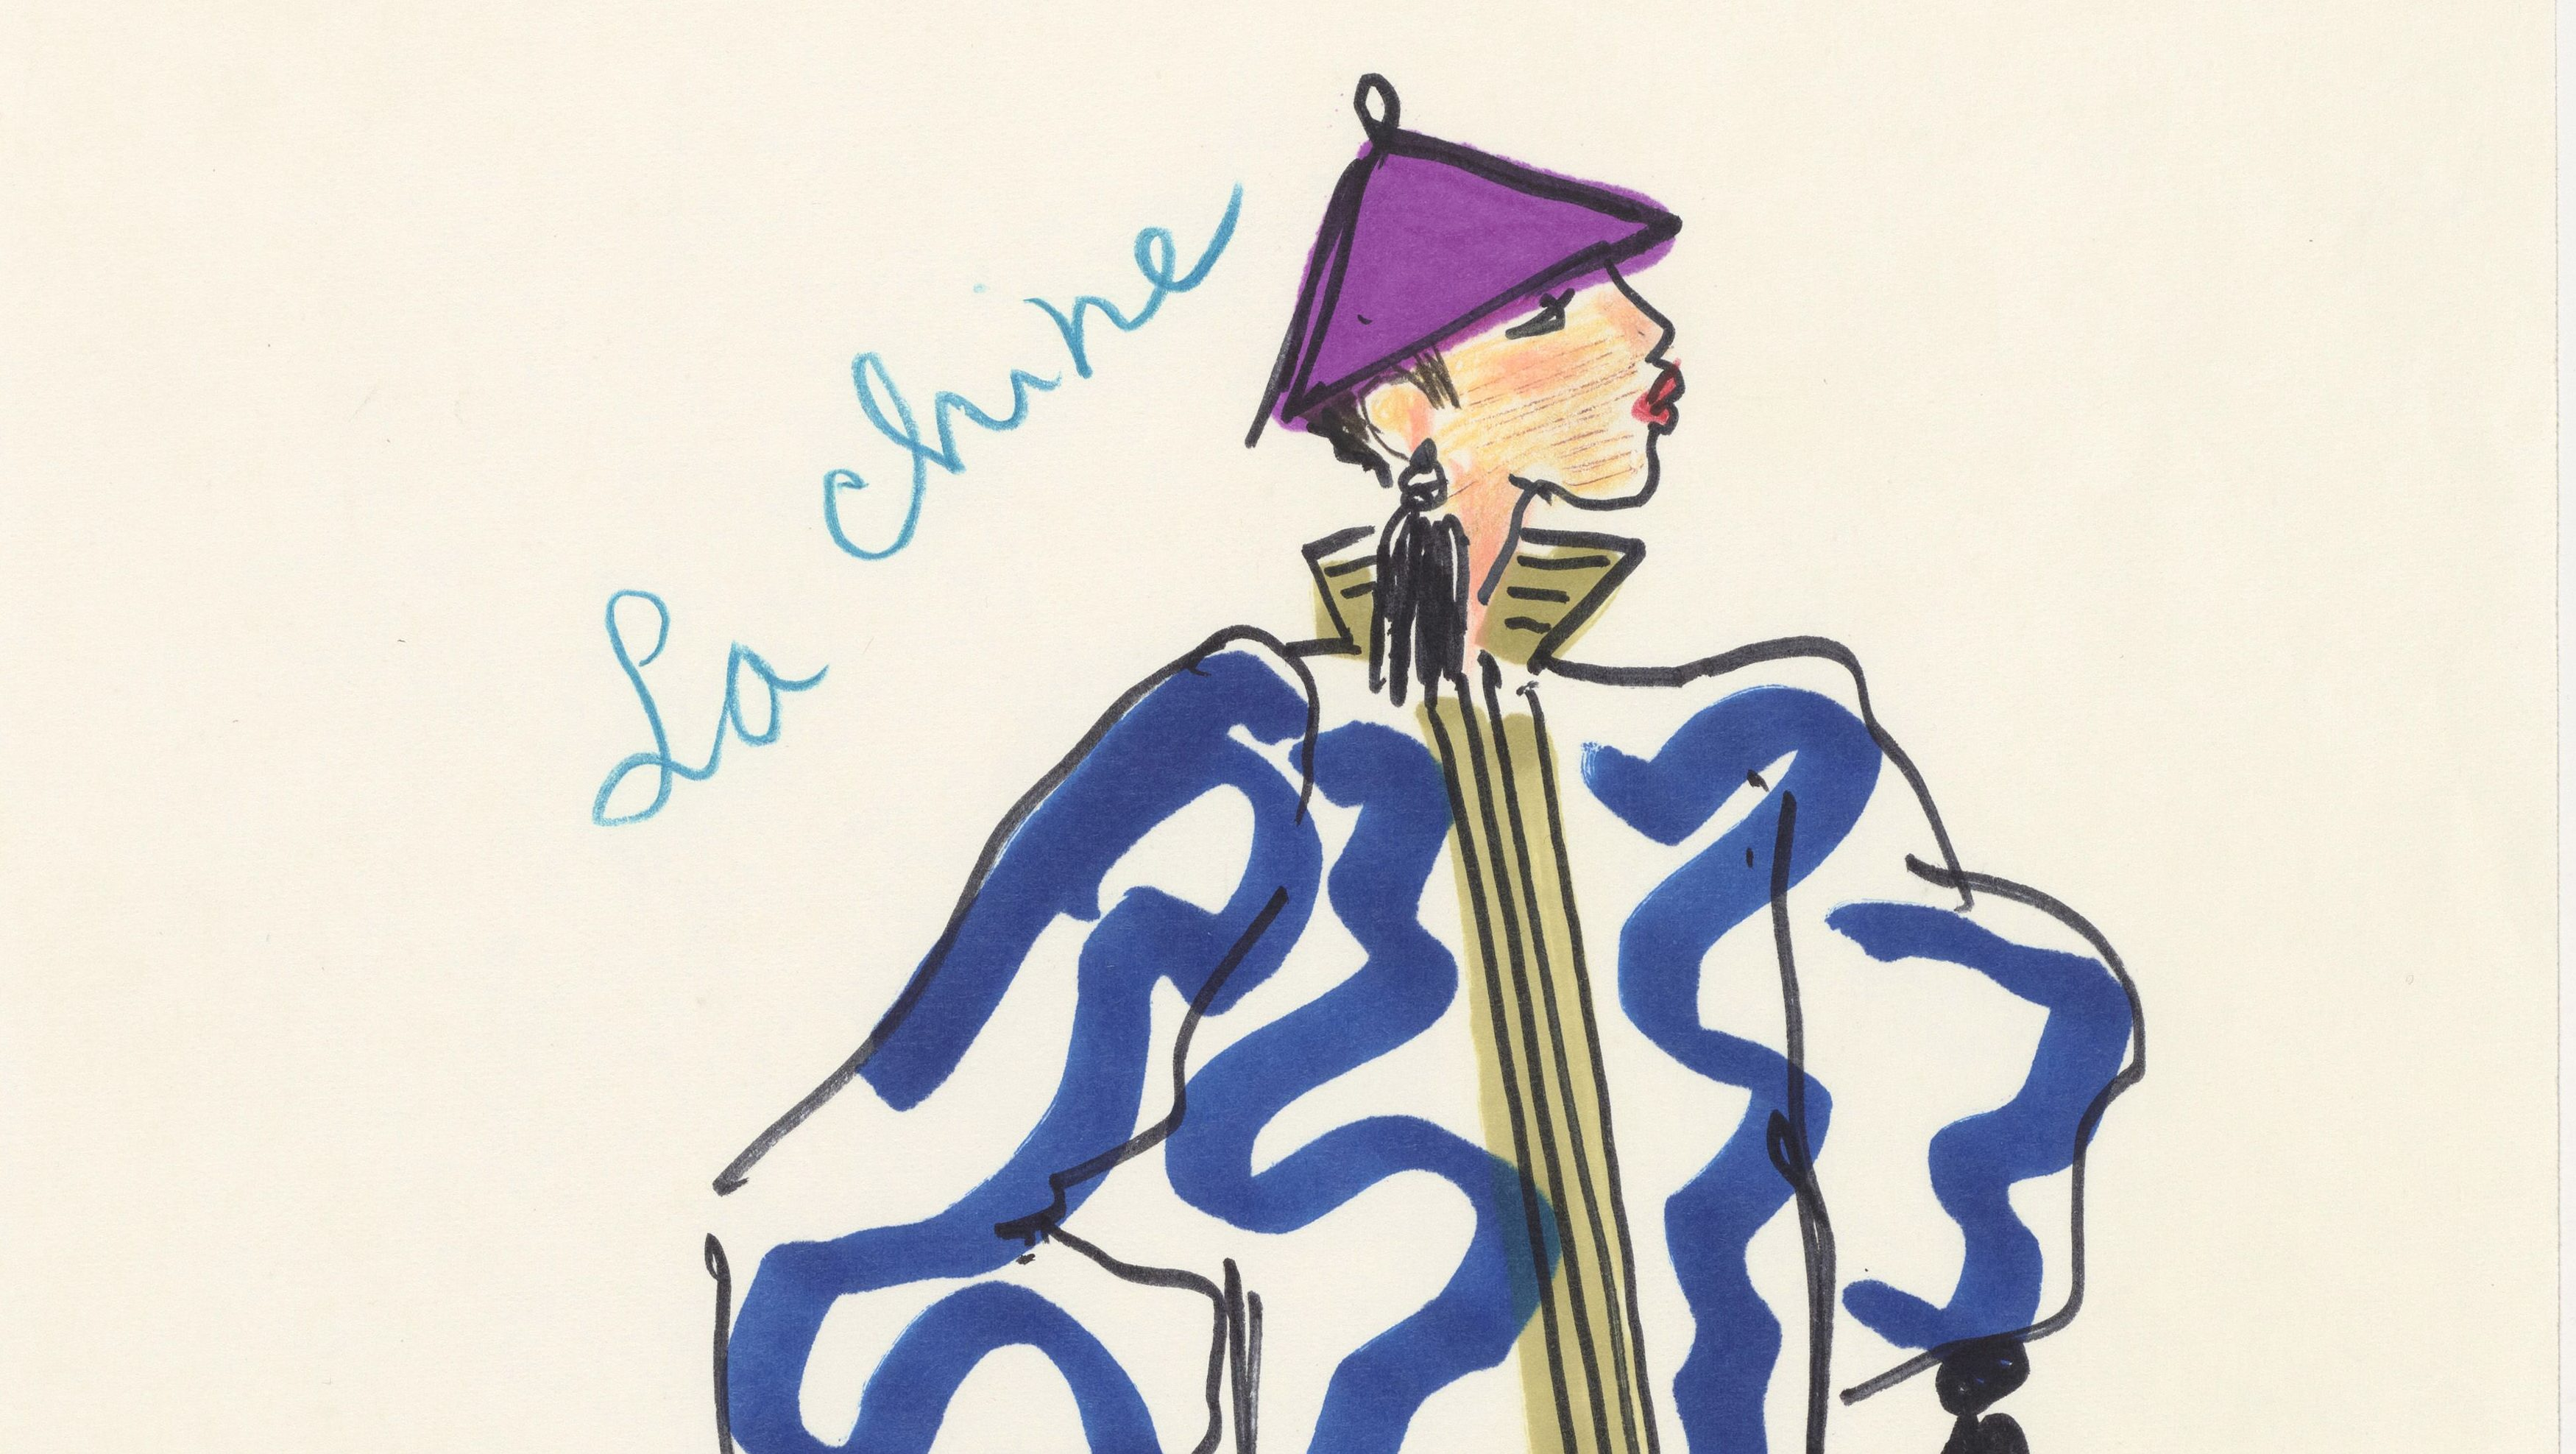 ca2aaf3c6fe How China and Asia influenced Yves Saint Laurent s fashion — Quartzy